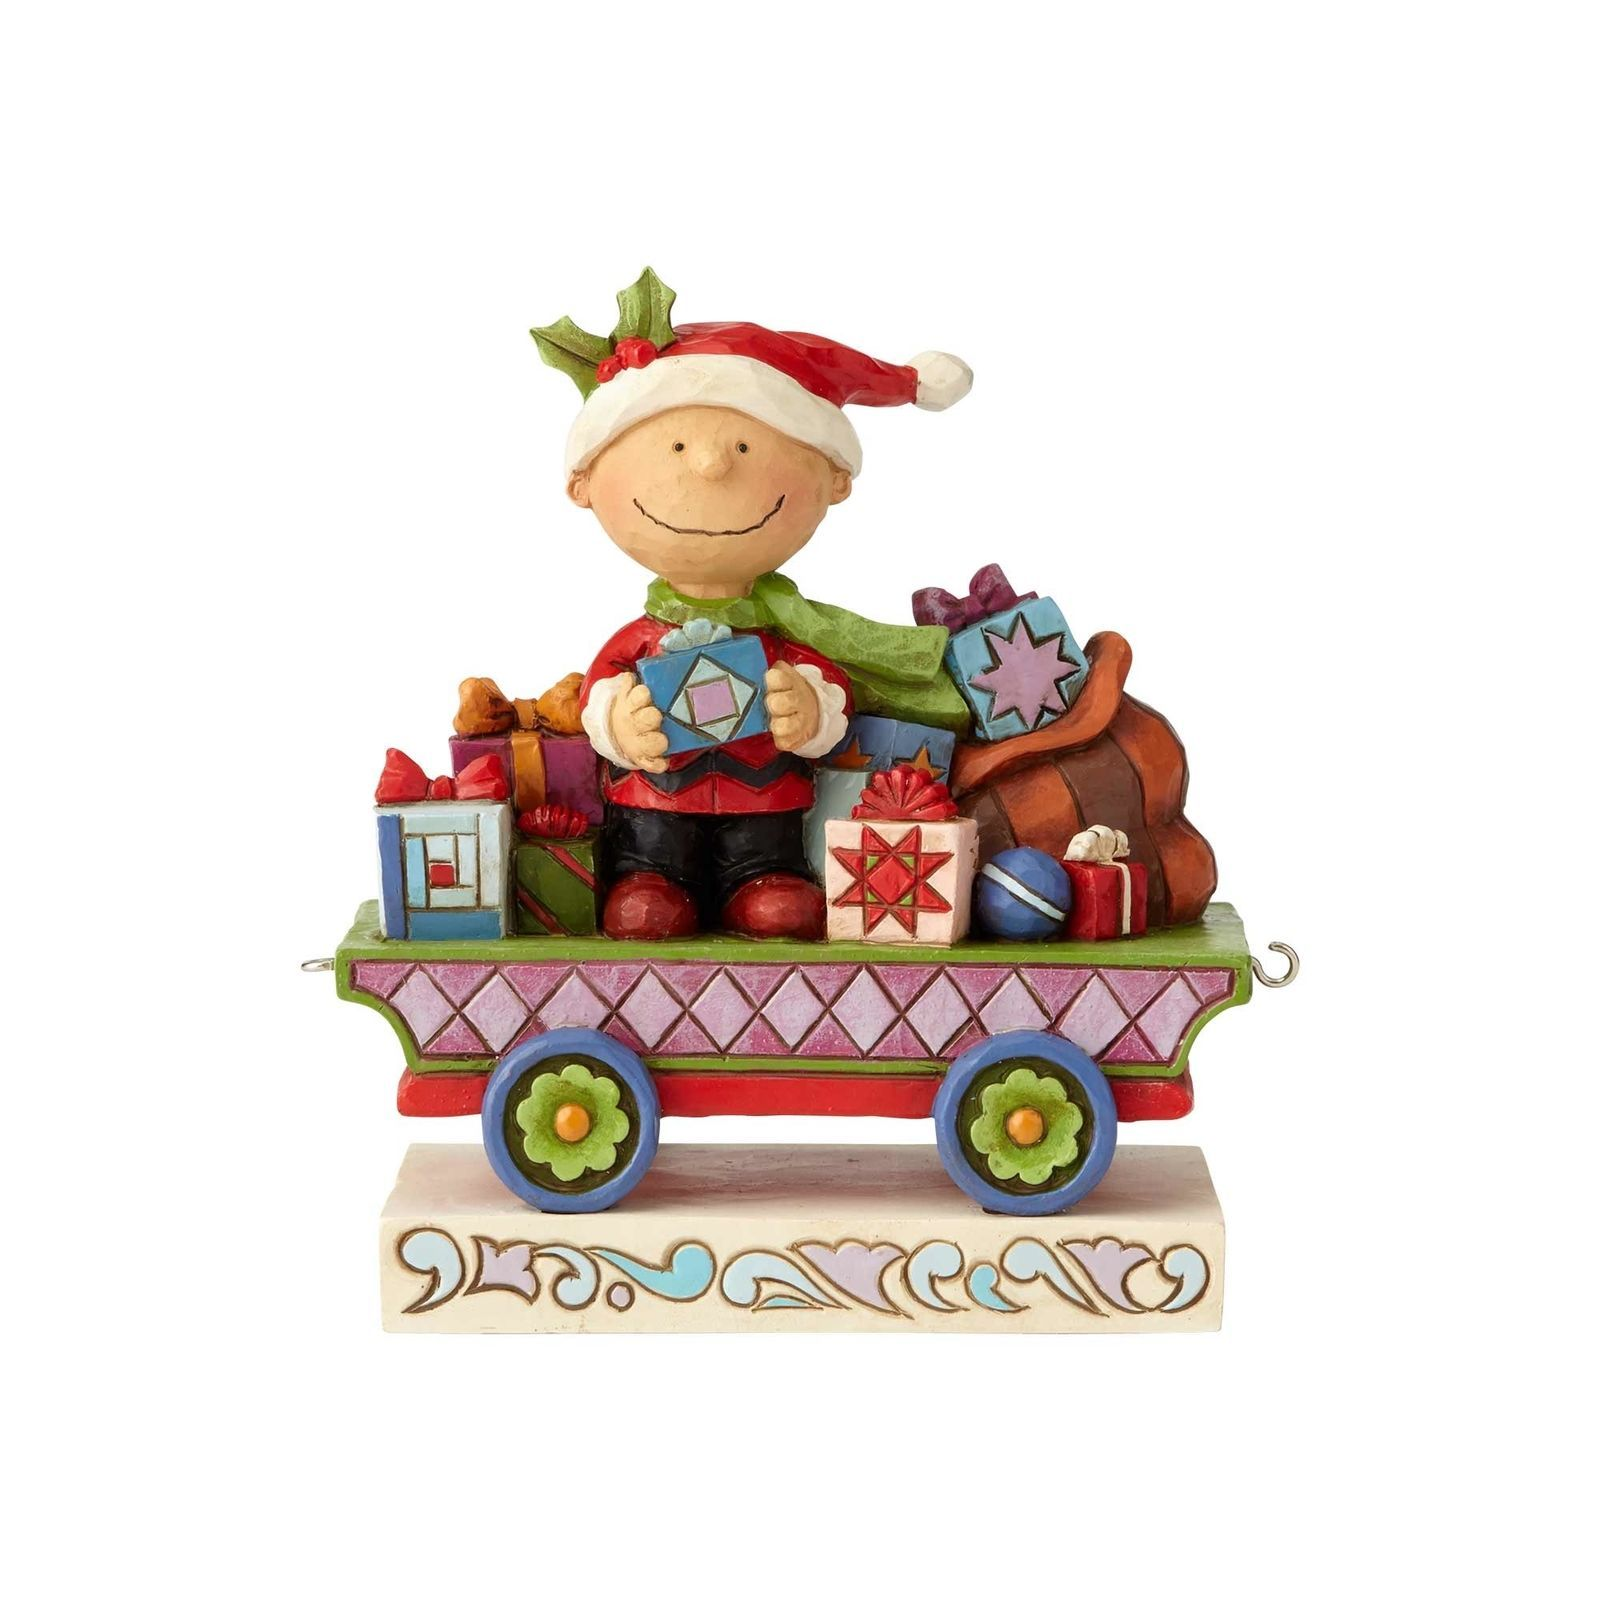 Jim Shore Peanuts Charlie Brown Christmas Train Resin Figurine New With Box